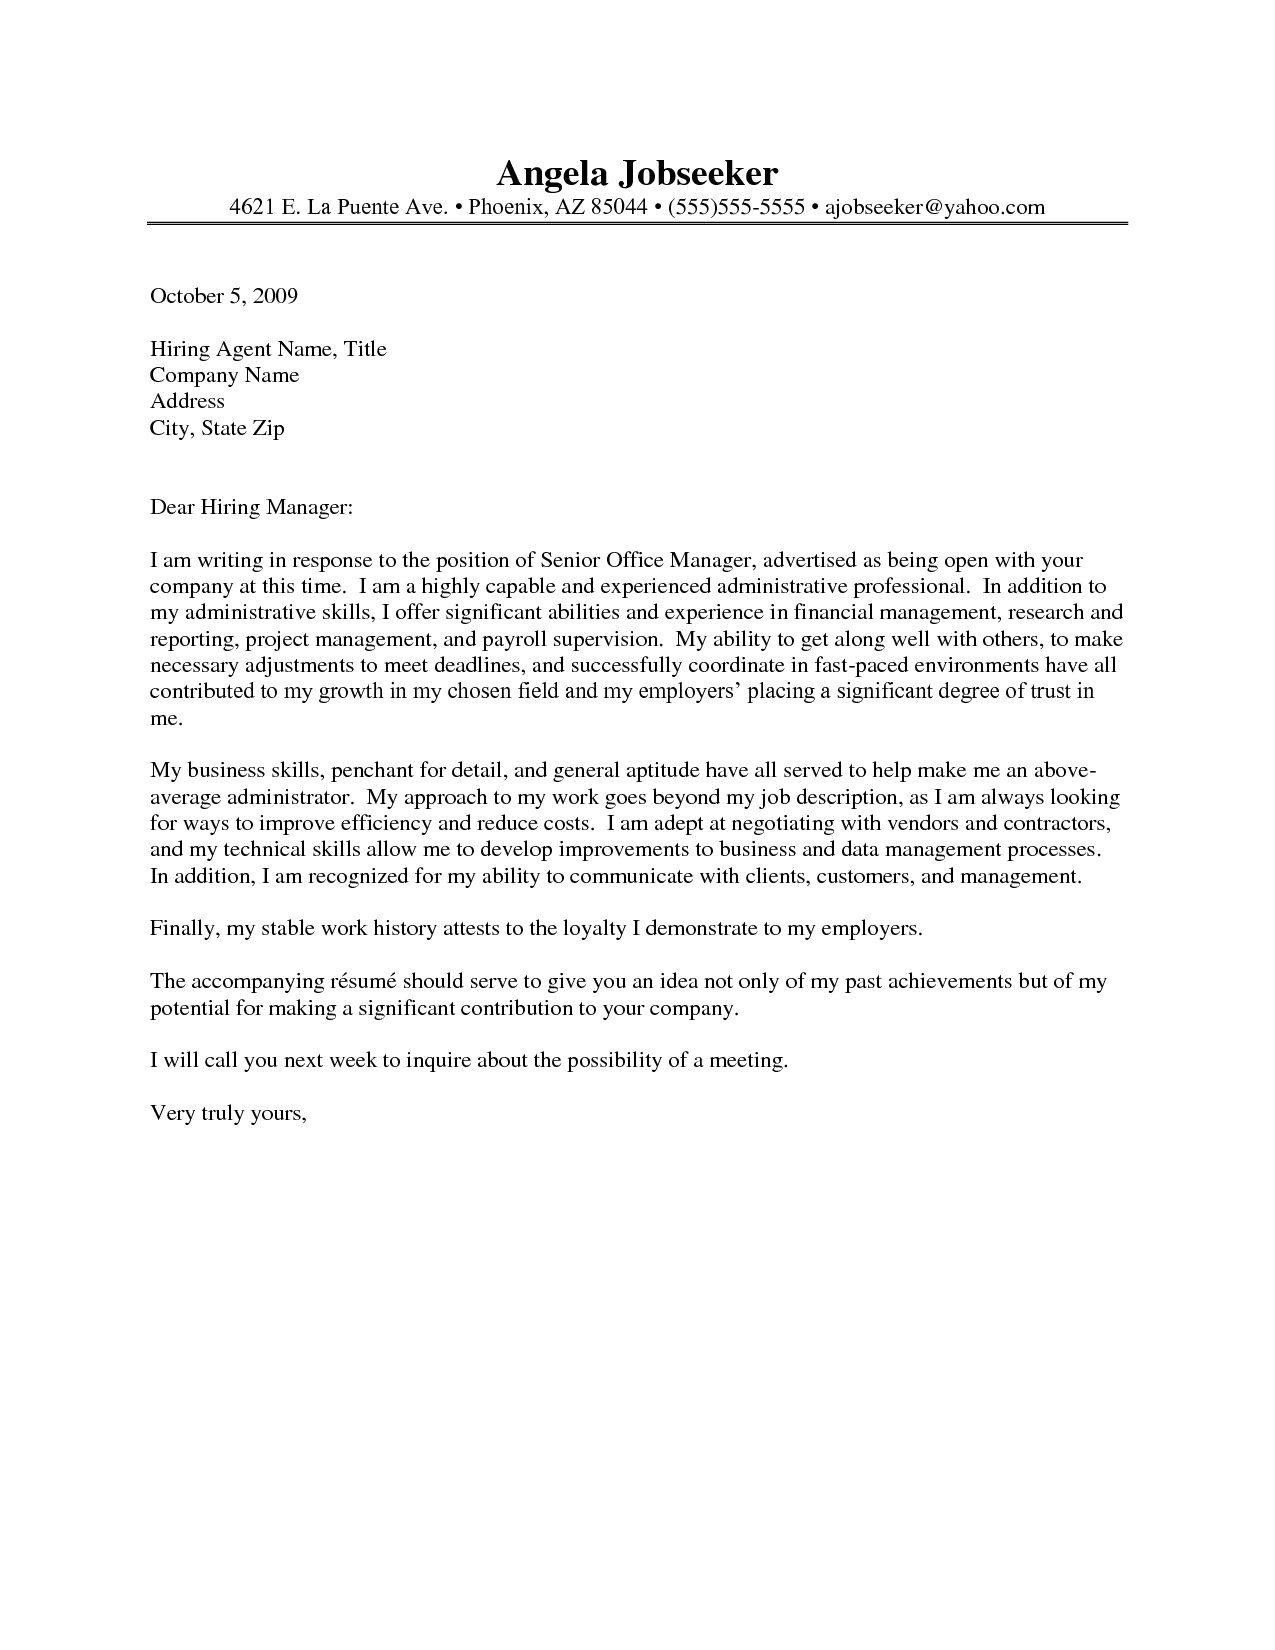 How to Write A Cover Letter for Administrative Position Administrative assistant Resume Cover Letter Http